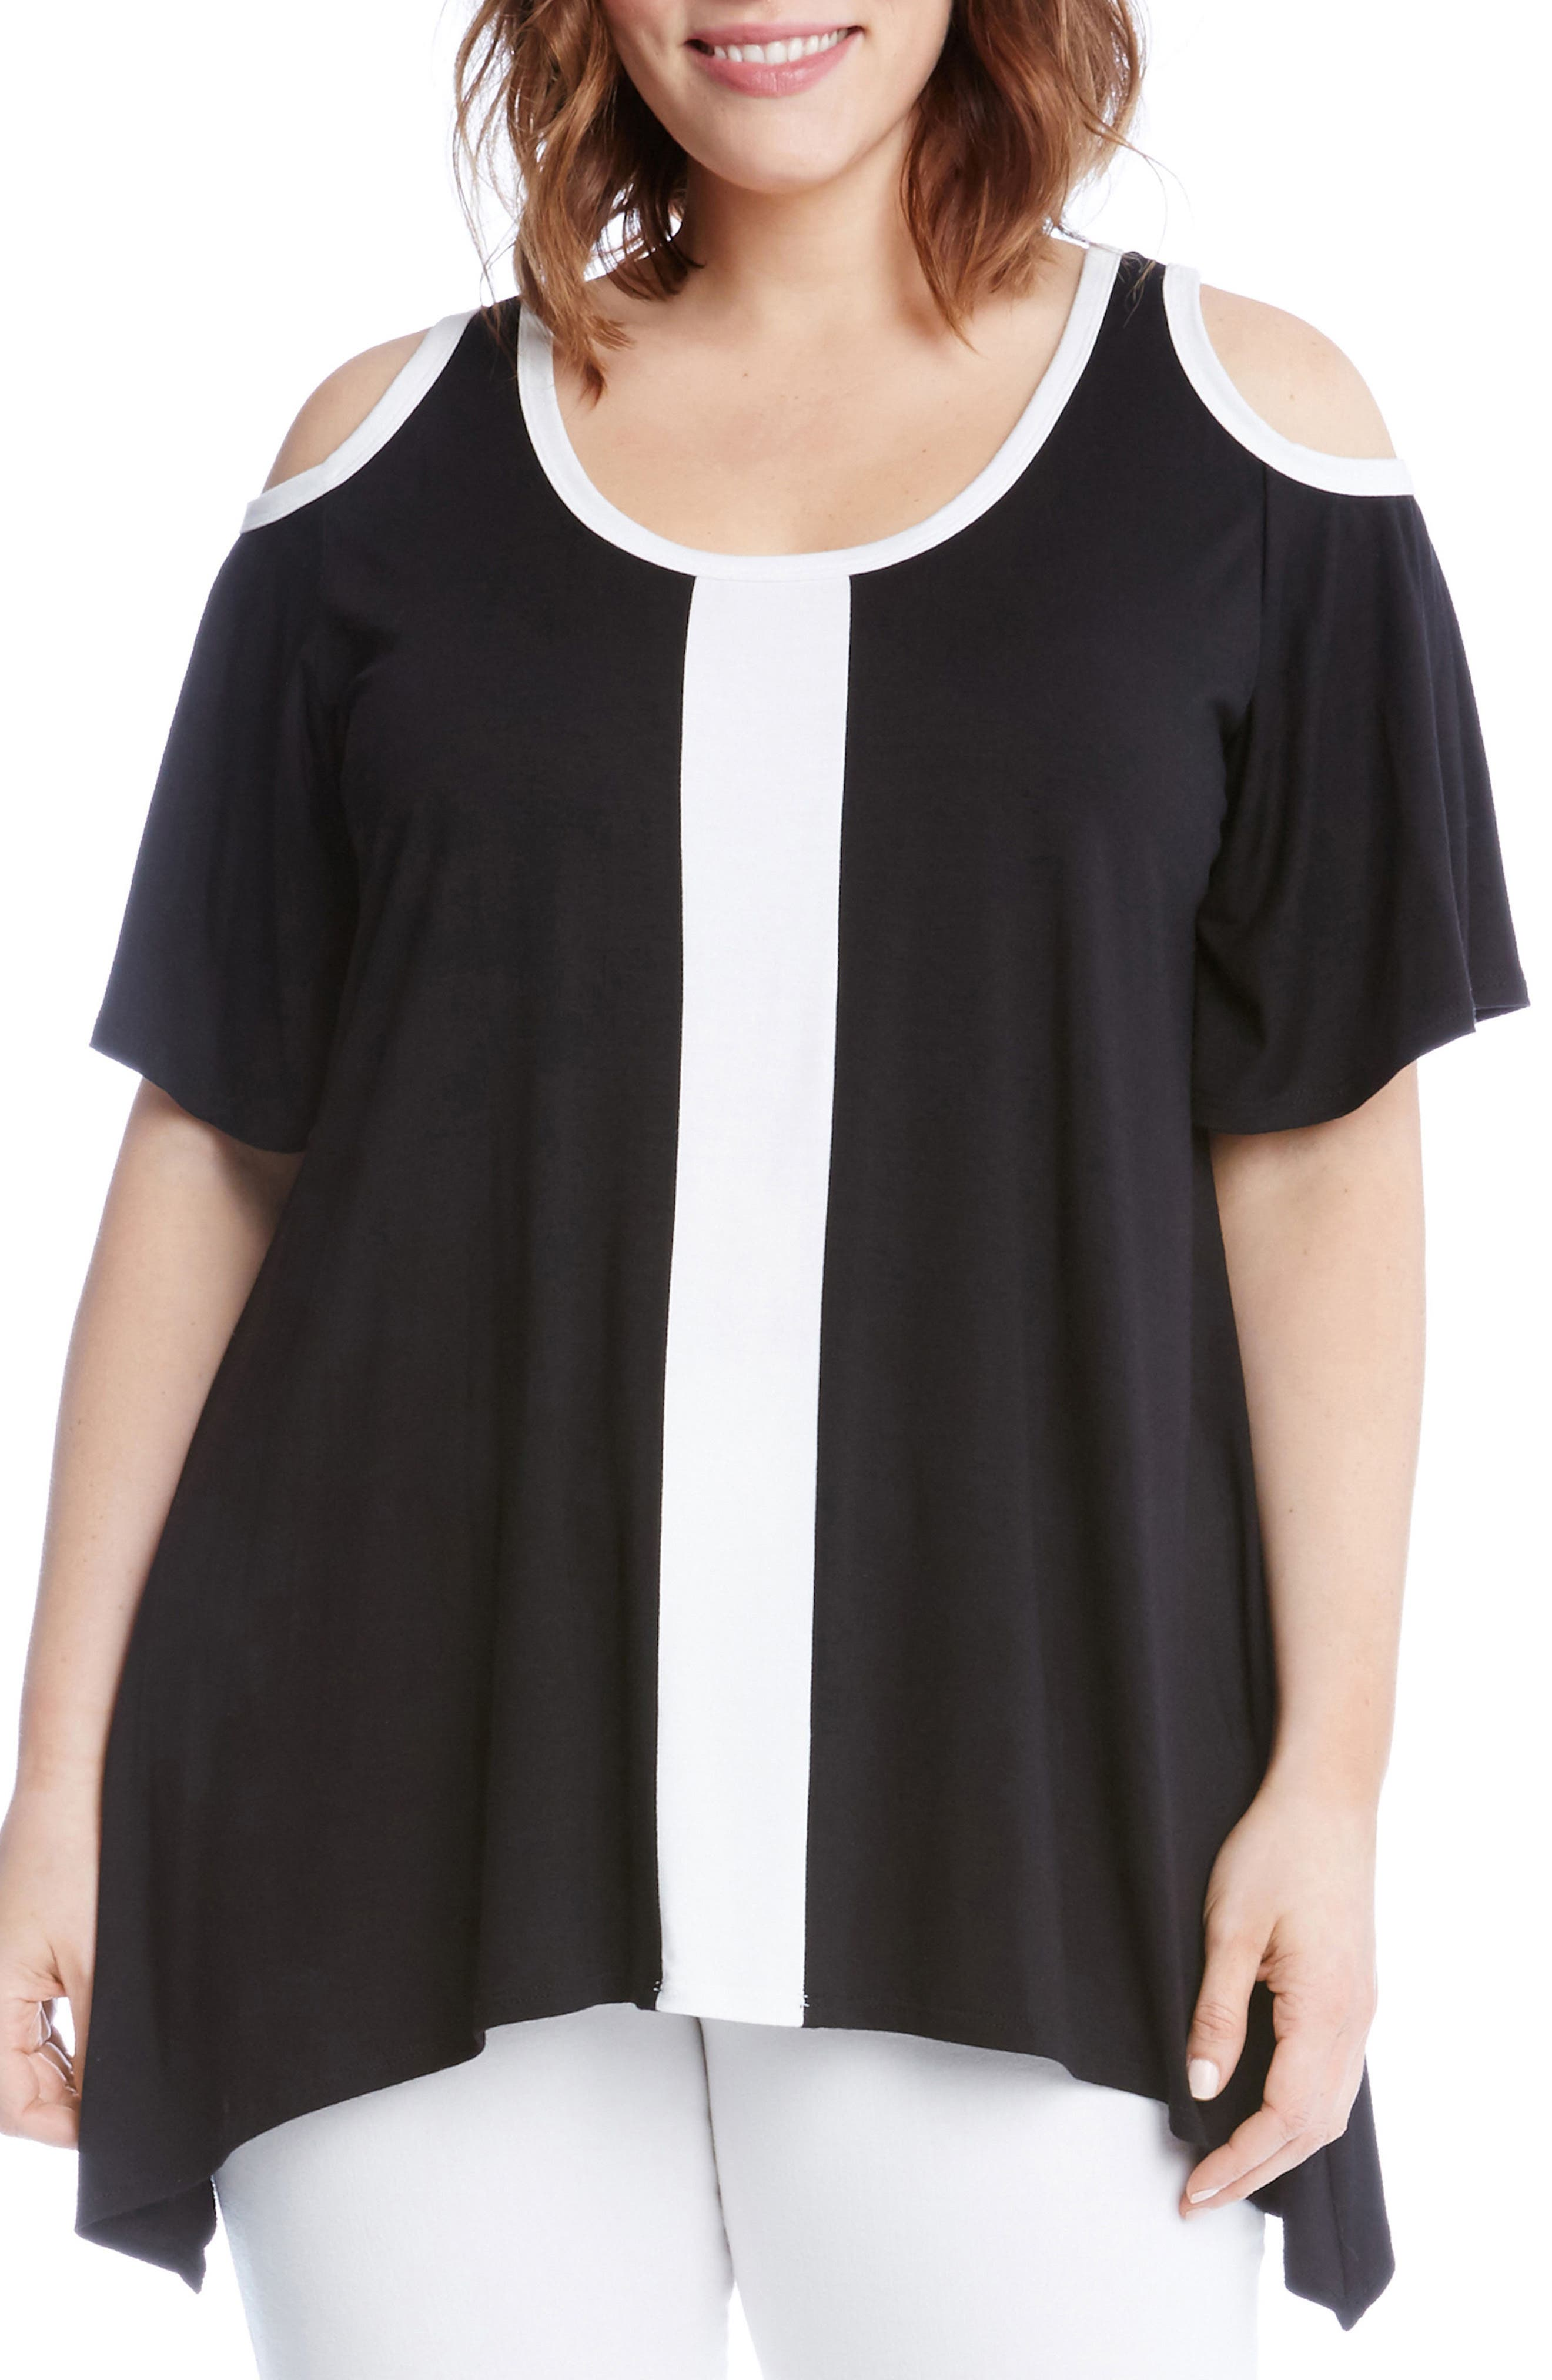 Alternate Image 1 Selected - Karen Kane Colorblock Cold Shoulder Top (Plus Size)